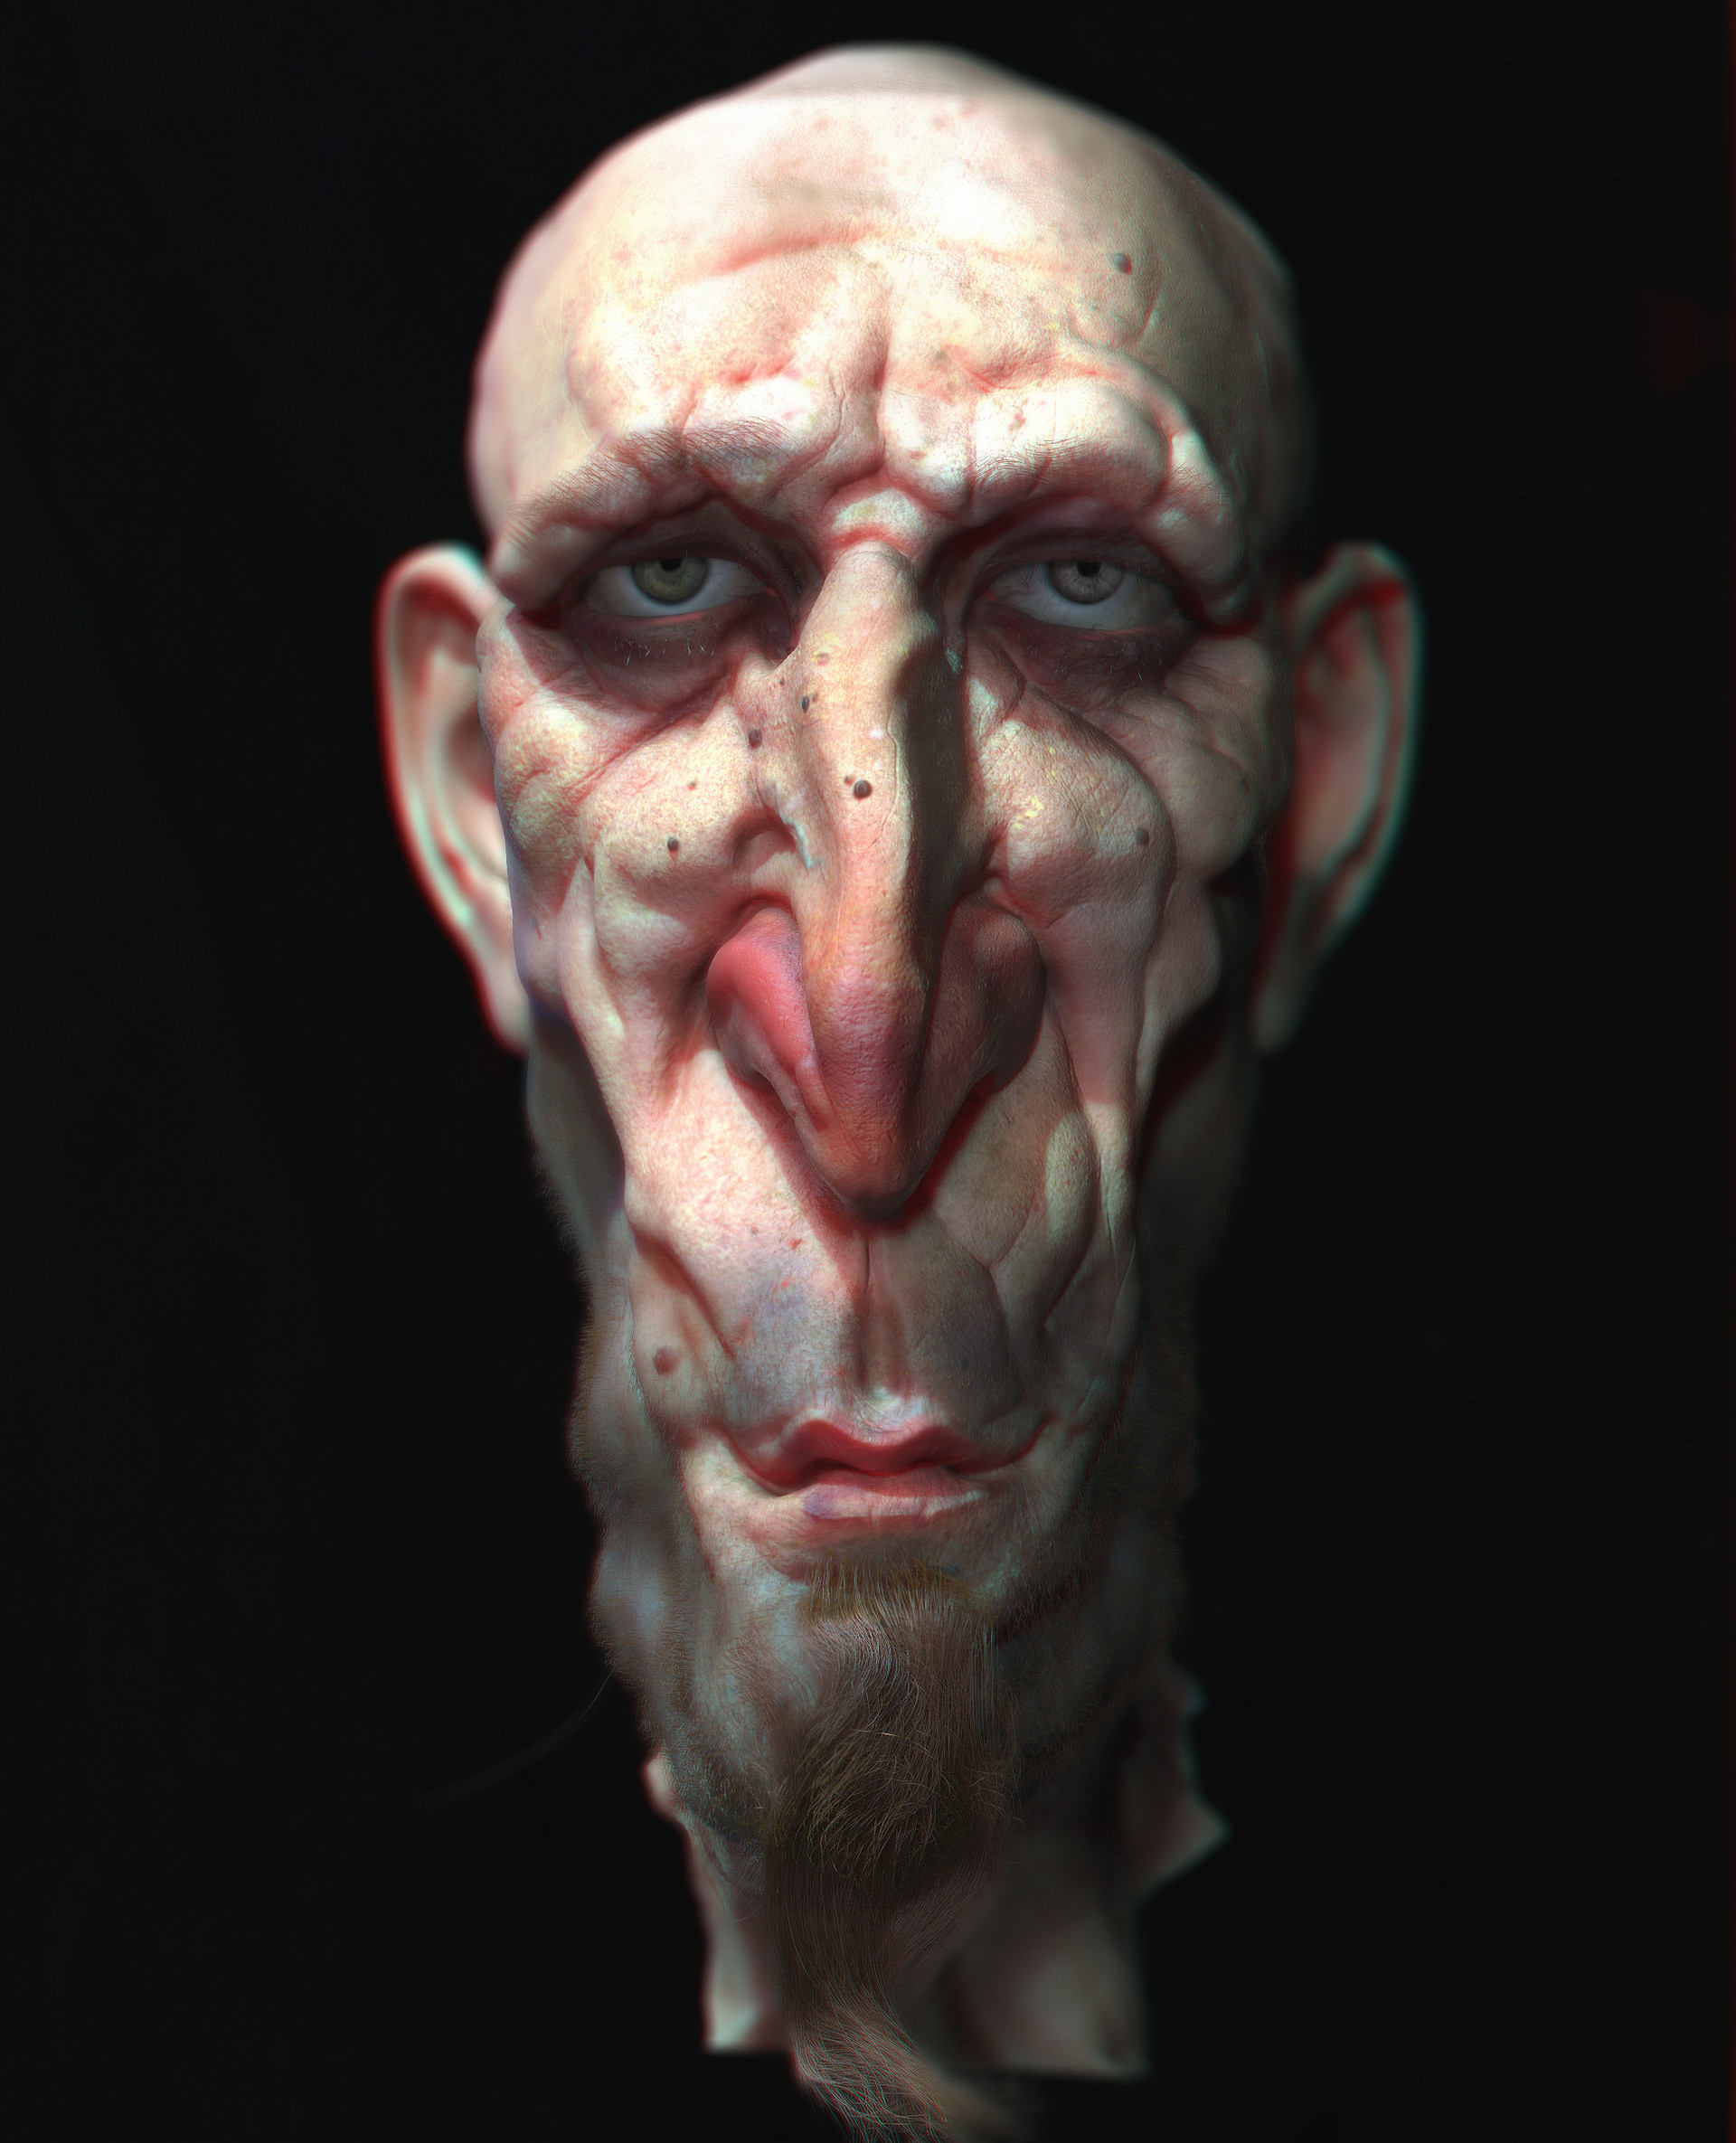 pablo dominguez digital painting character design old skiny man